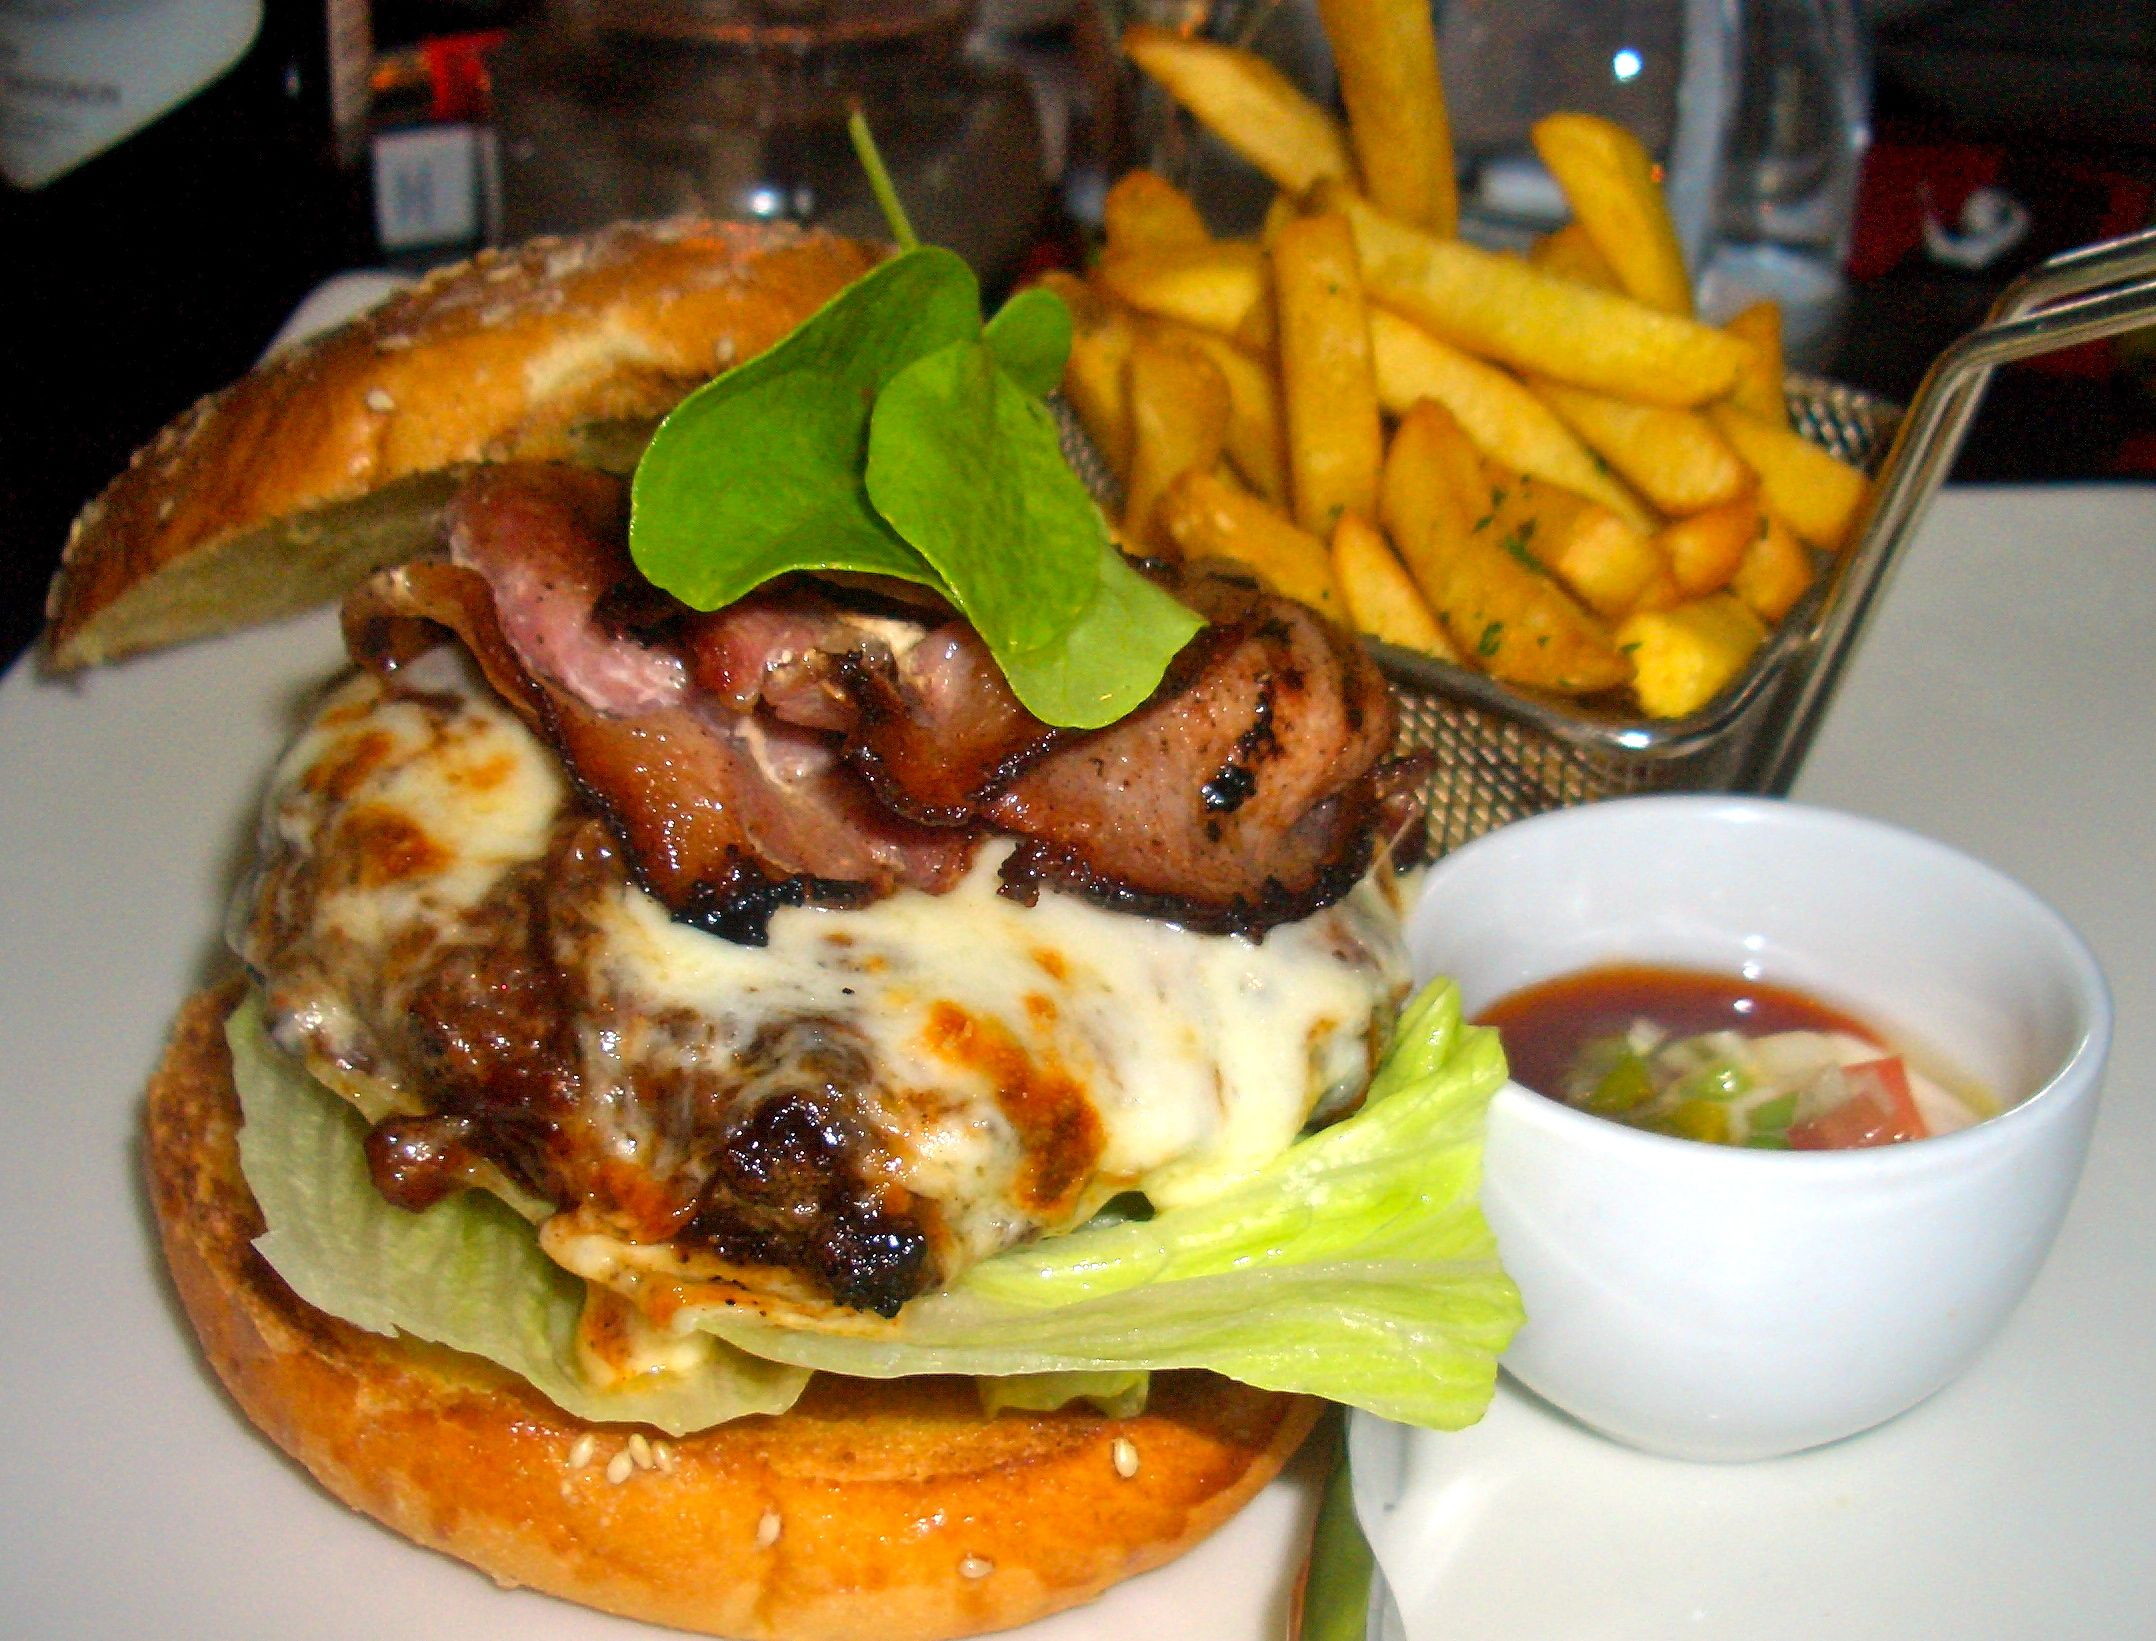 an amazing cheese and bacon burger at firemans arms aqua shard subdued lighting